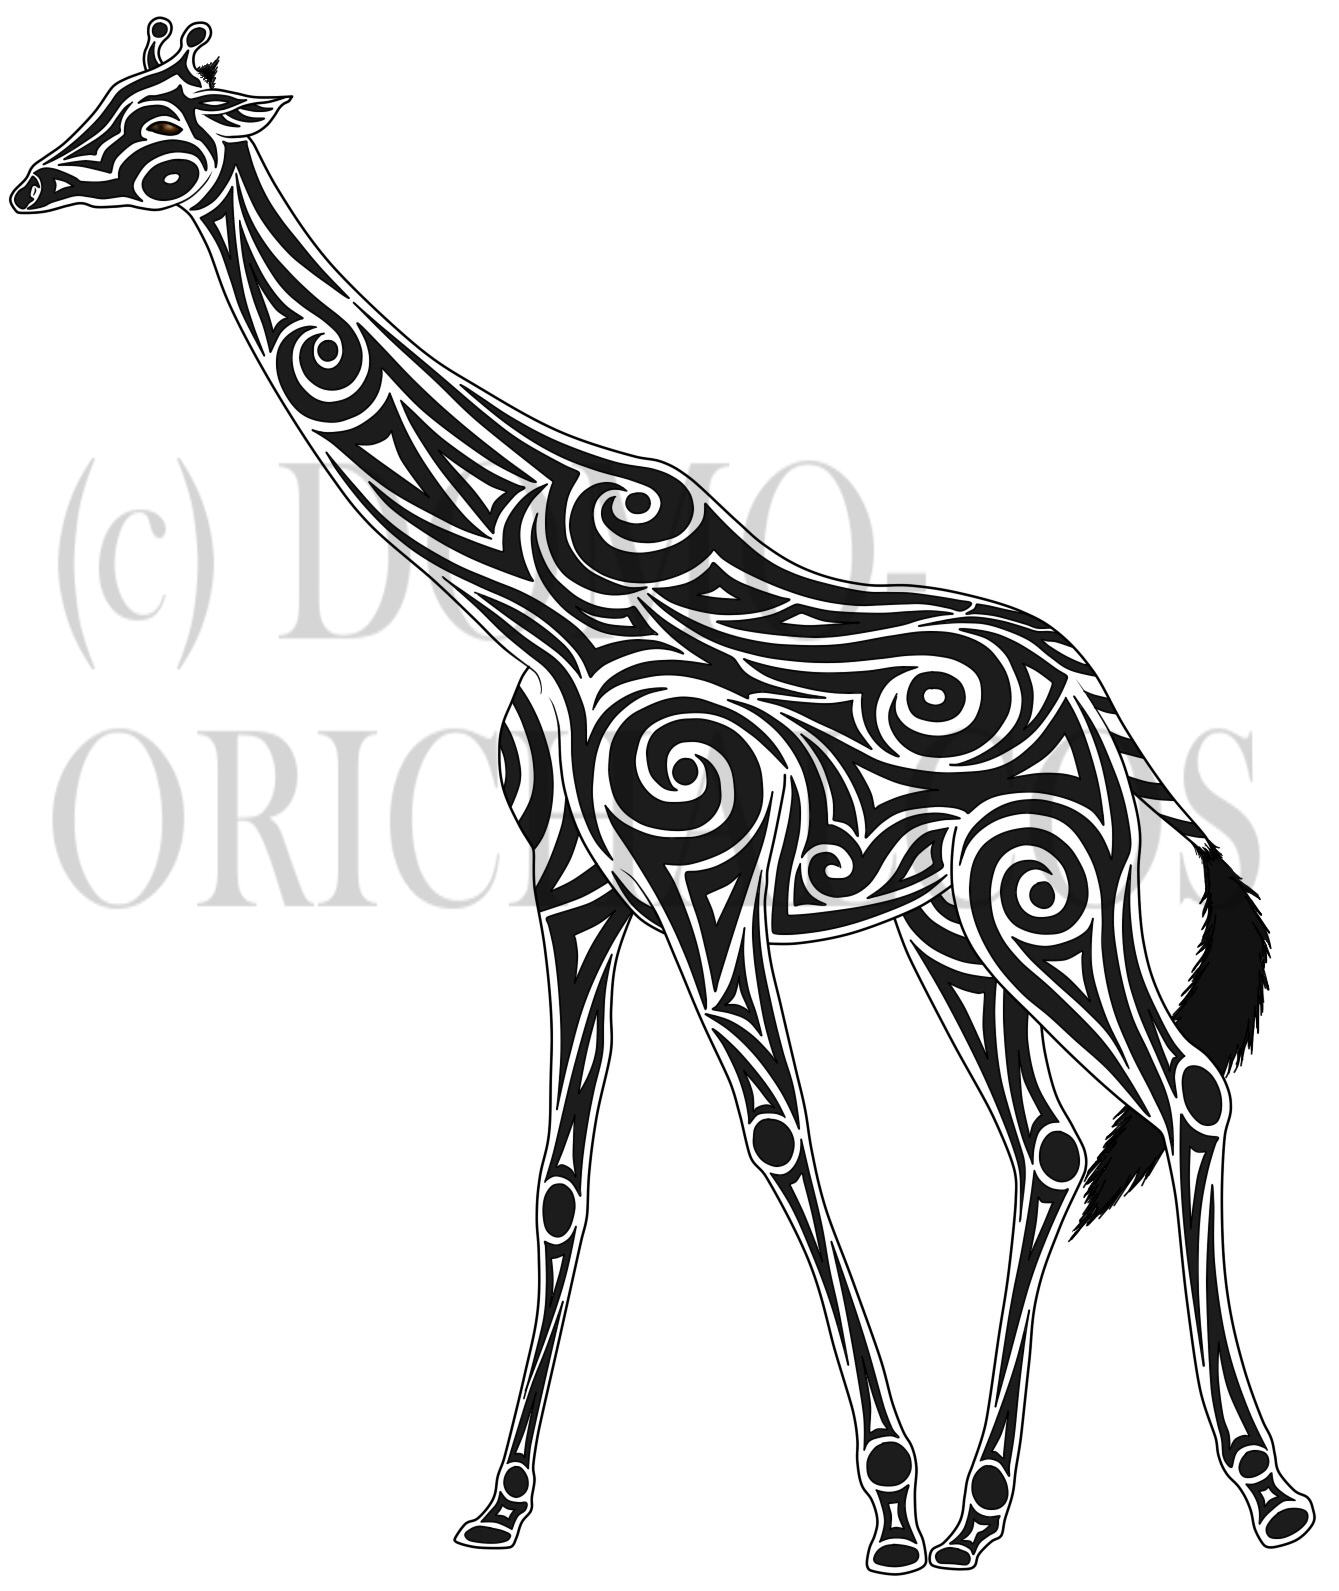 Giraffe Tattoo By DomoOrichalcos On DeviantArt